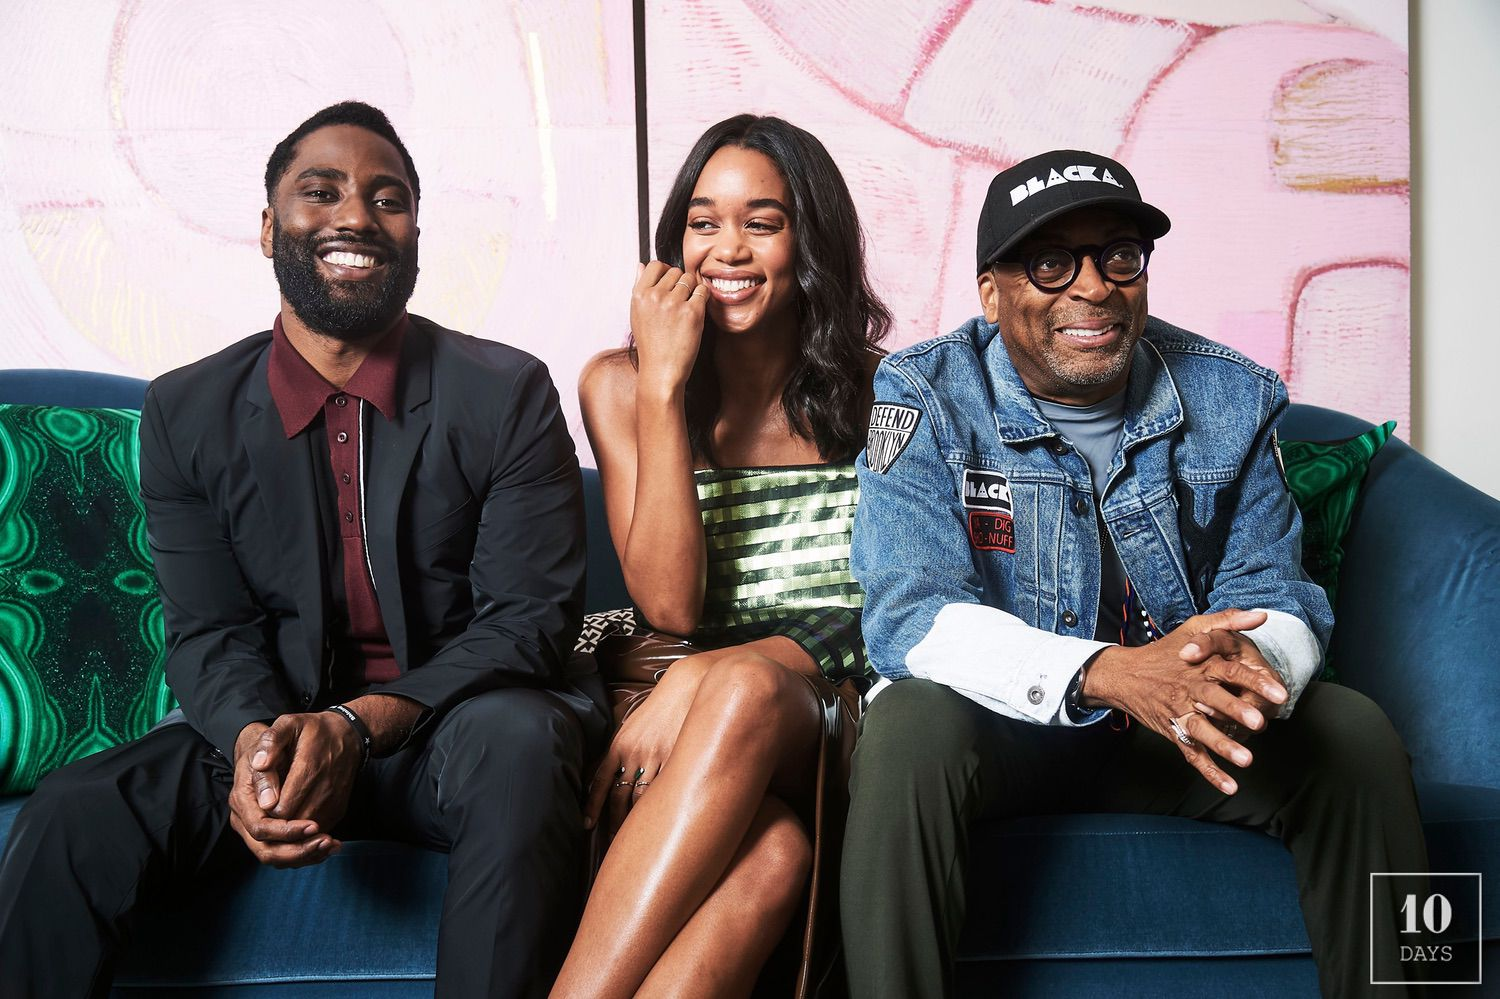 Villa AH host Grand prix 's Winner «BLACK KLANSMAN» by Spike Lee